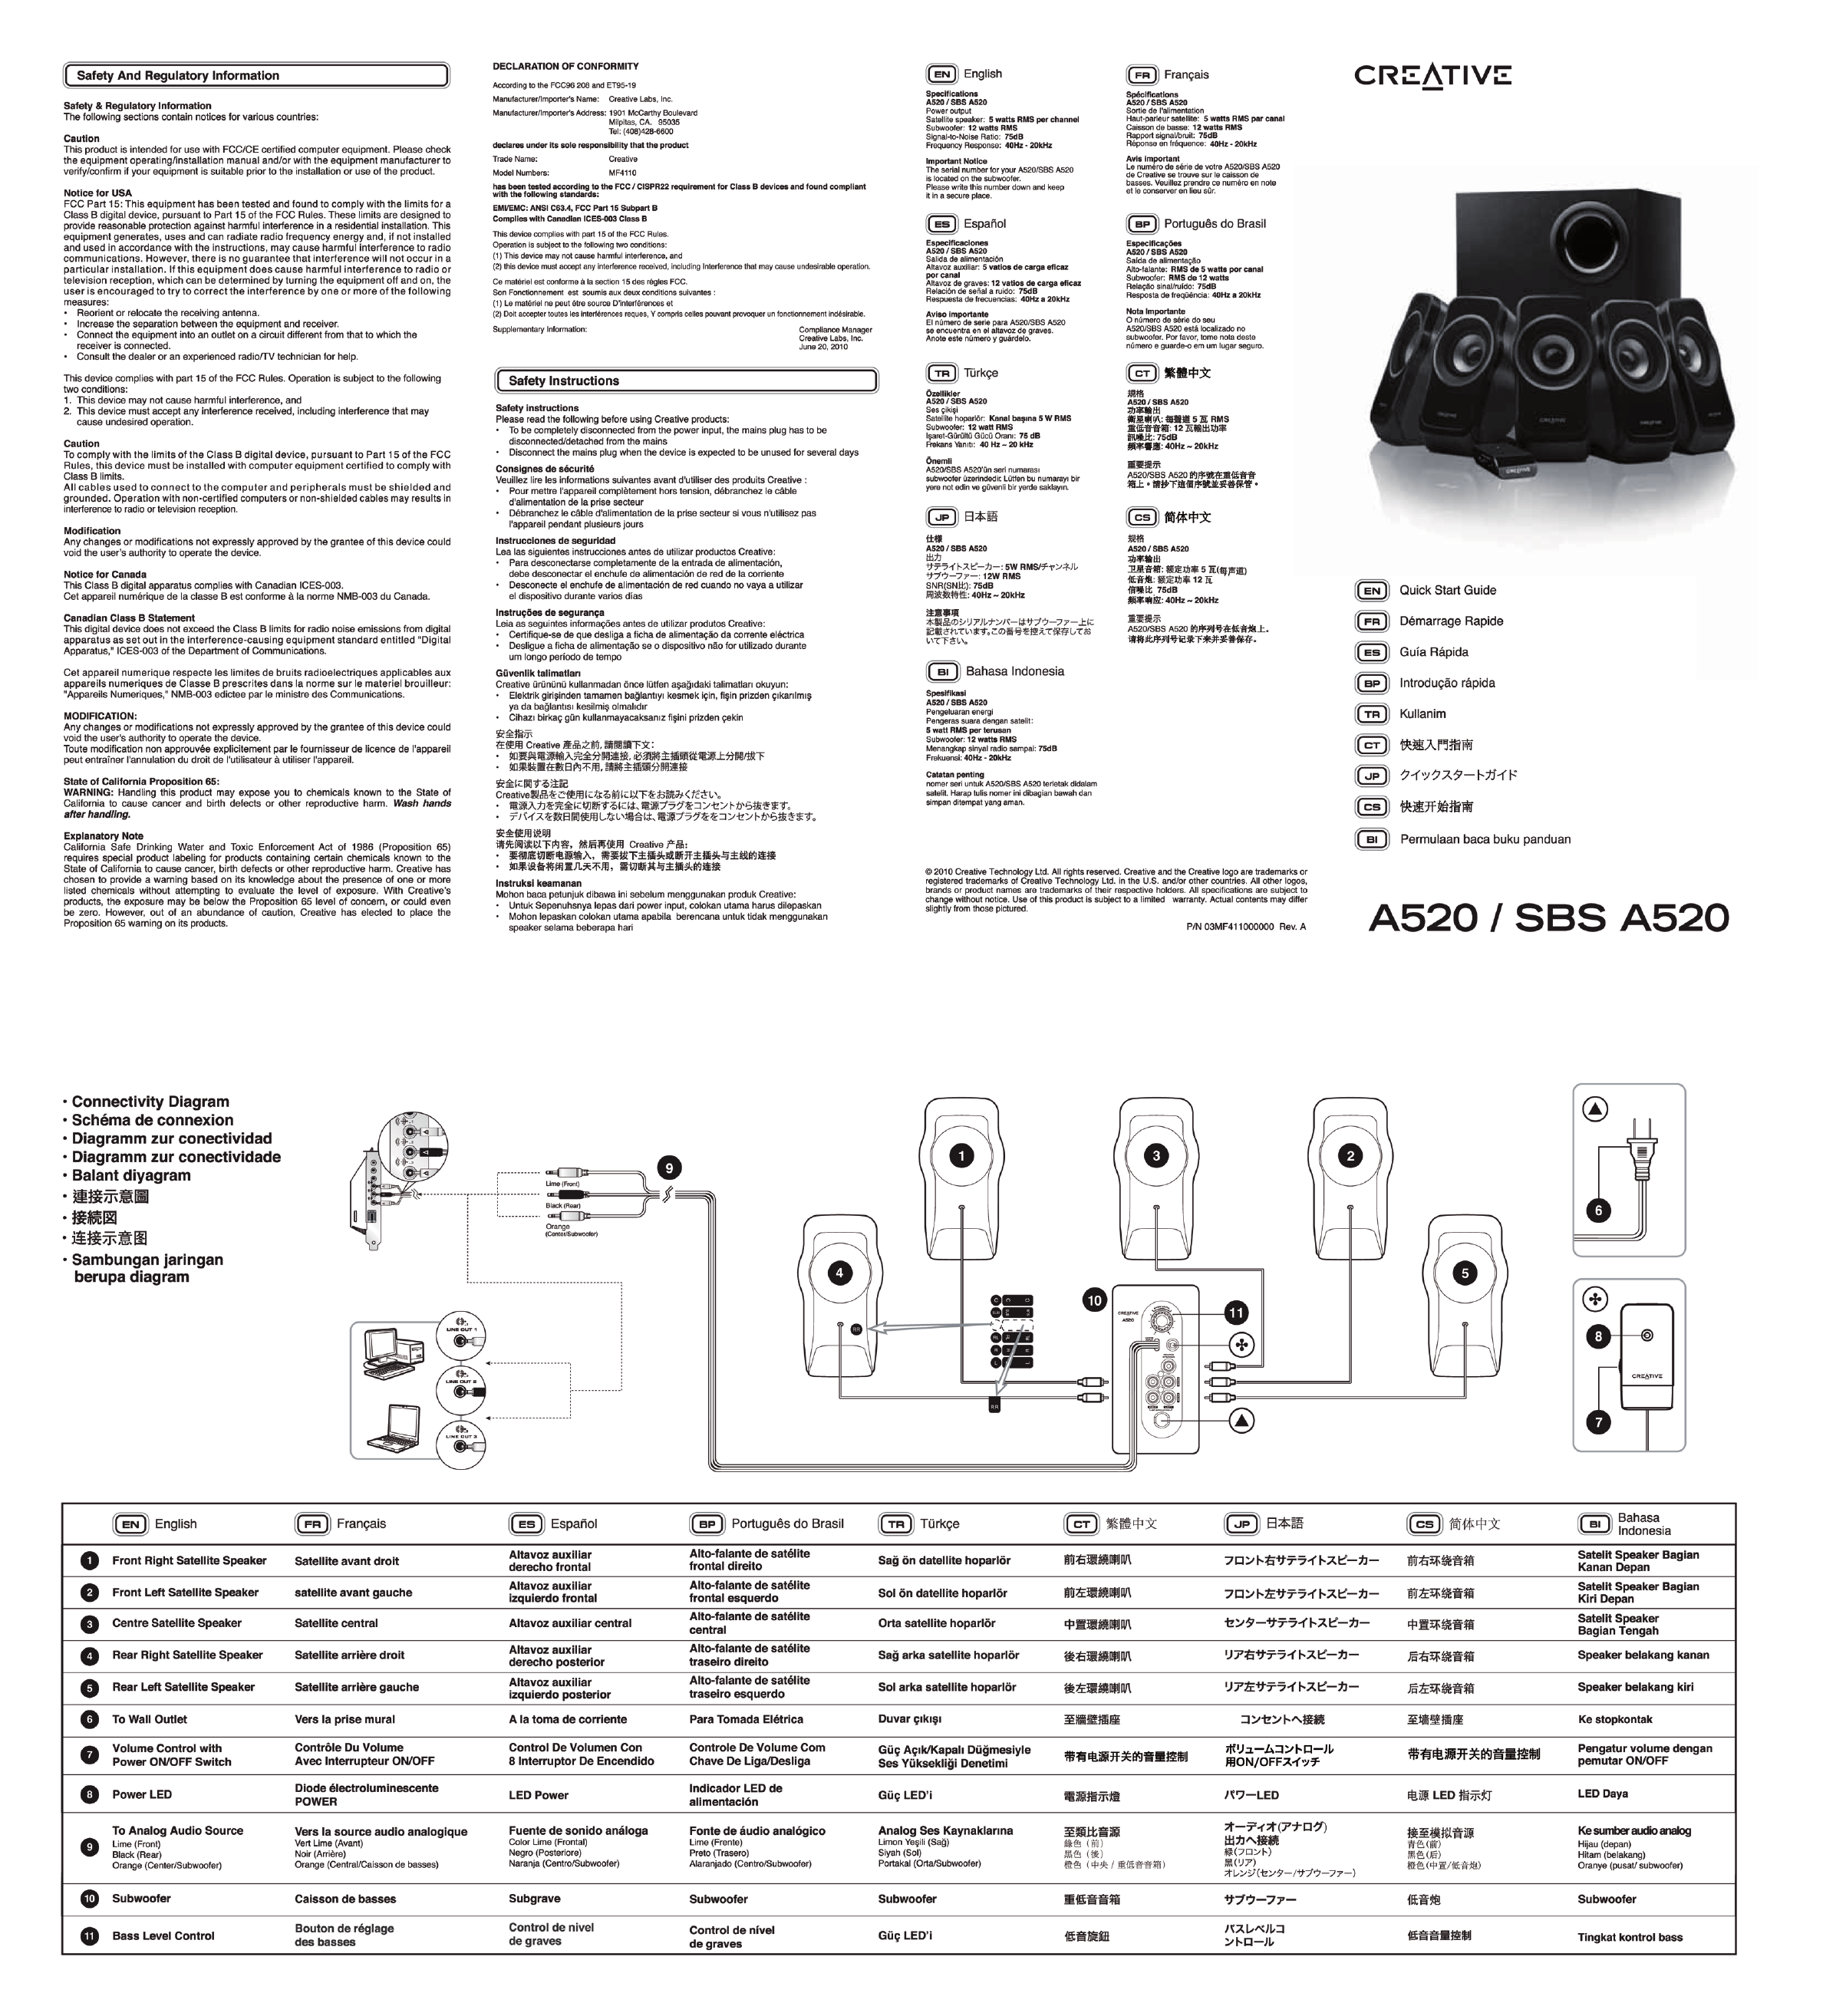 Creative Labs Home Theater System A520 User Guide